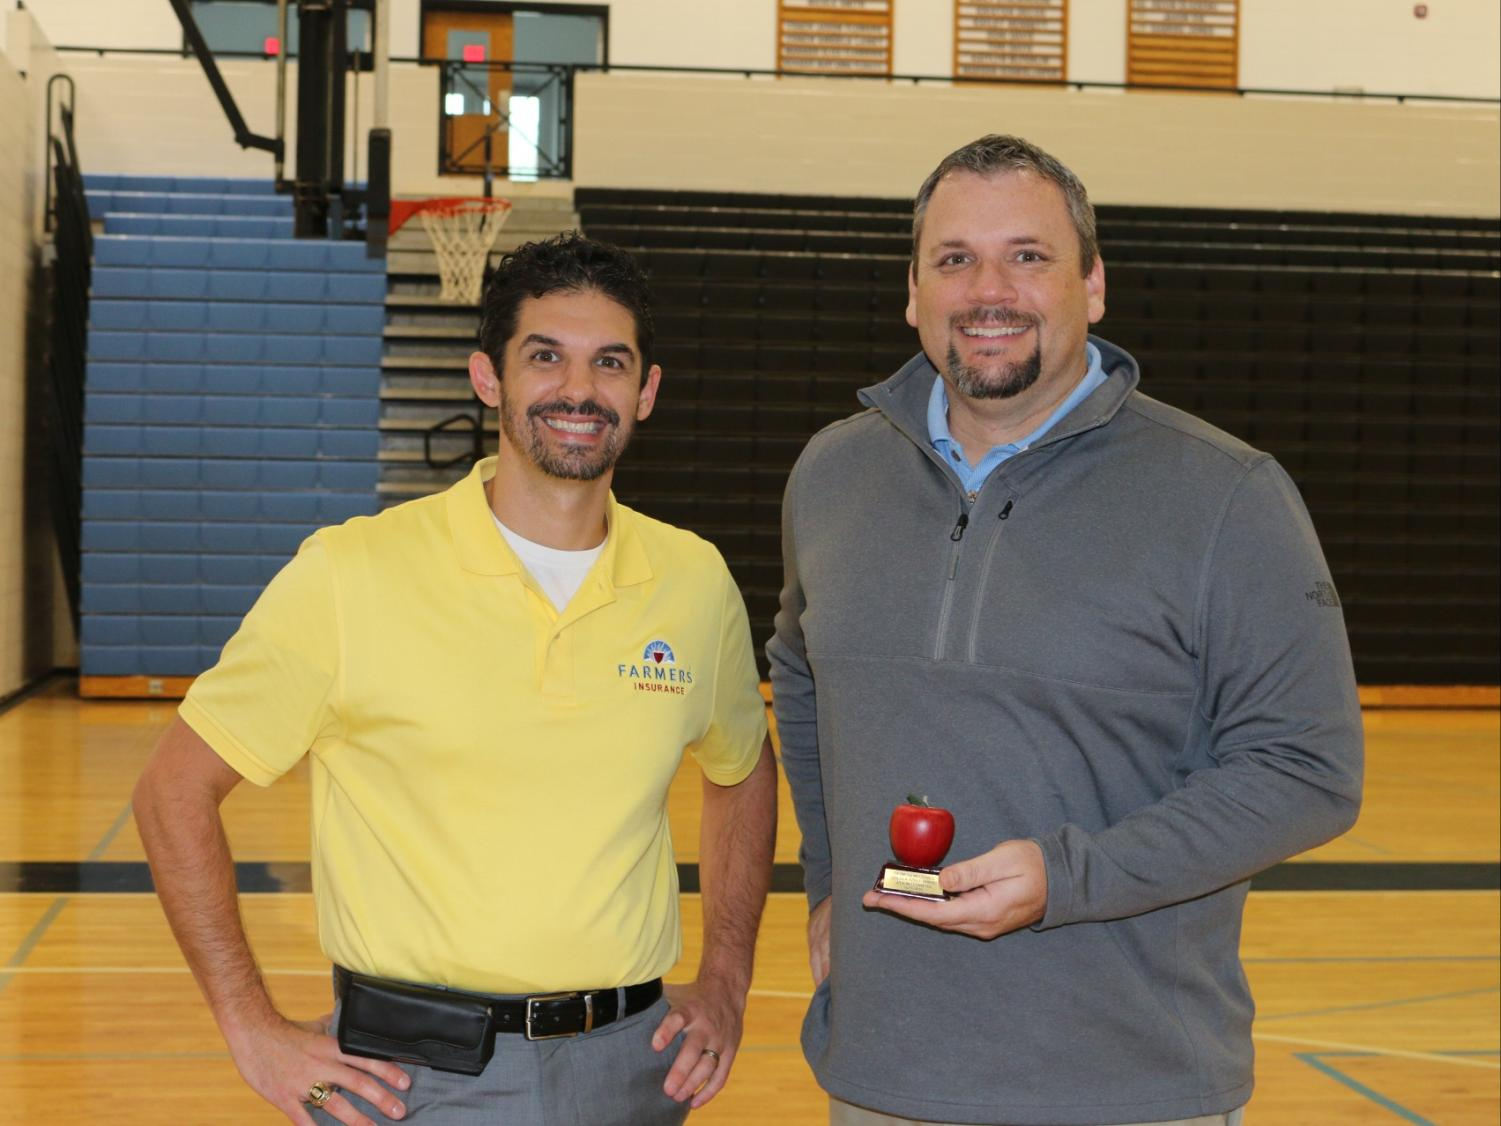 Tim Monihan from Farmers Insurance in Peachtree City poses with this month's Golden Apple winner Jason Flowers. Flowers was selected for this award because of his personable  teaching style, which helps him relate to his students.